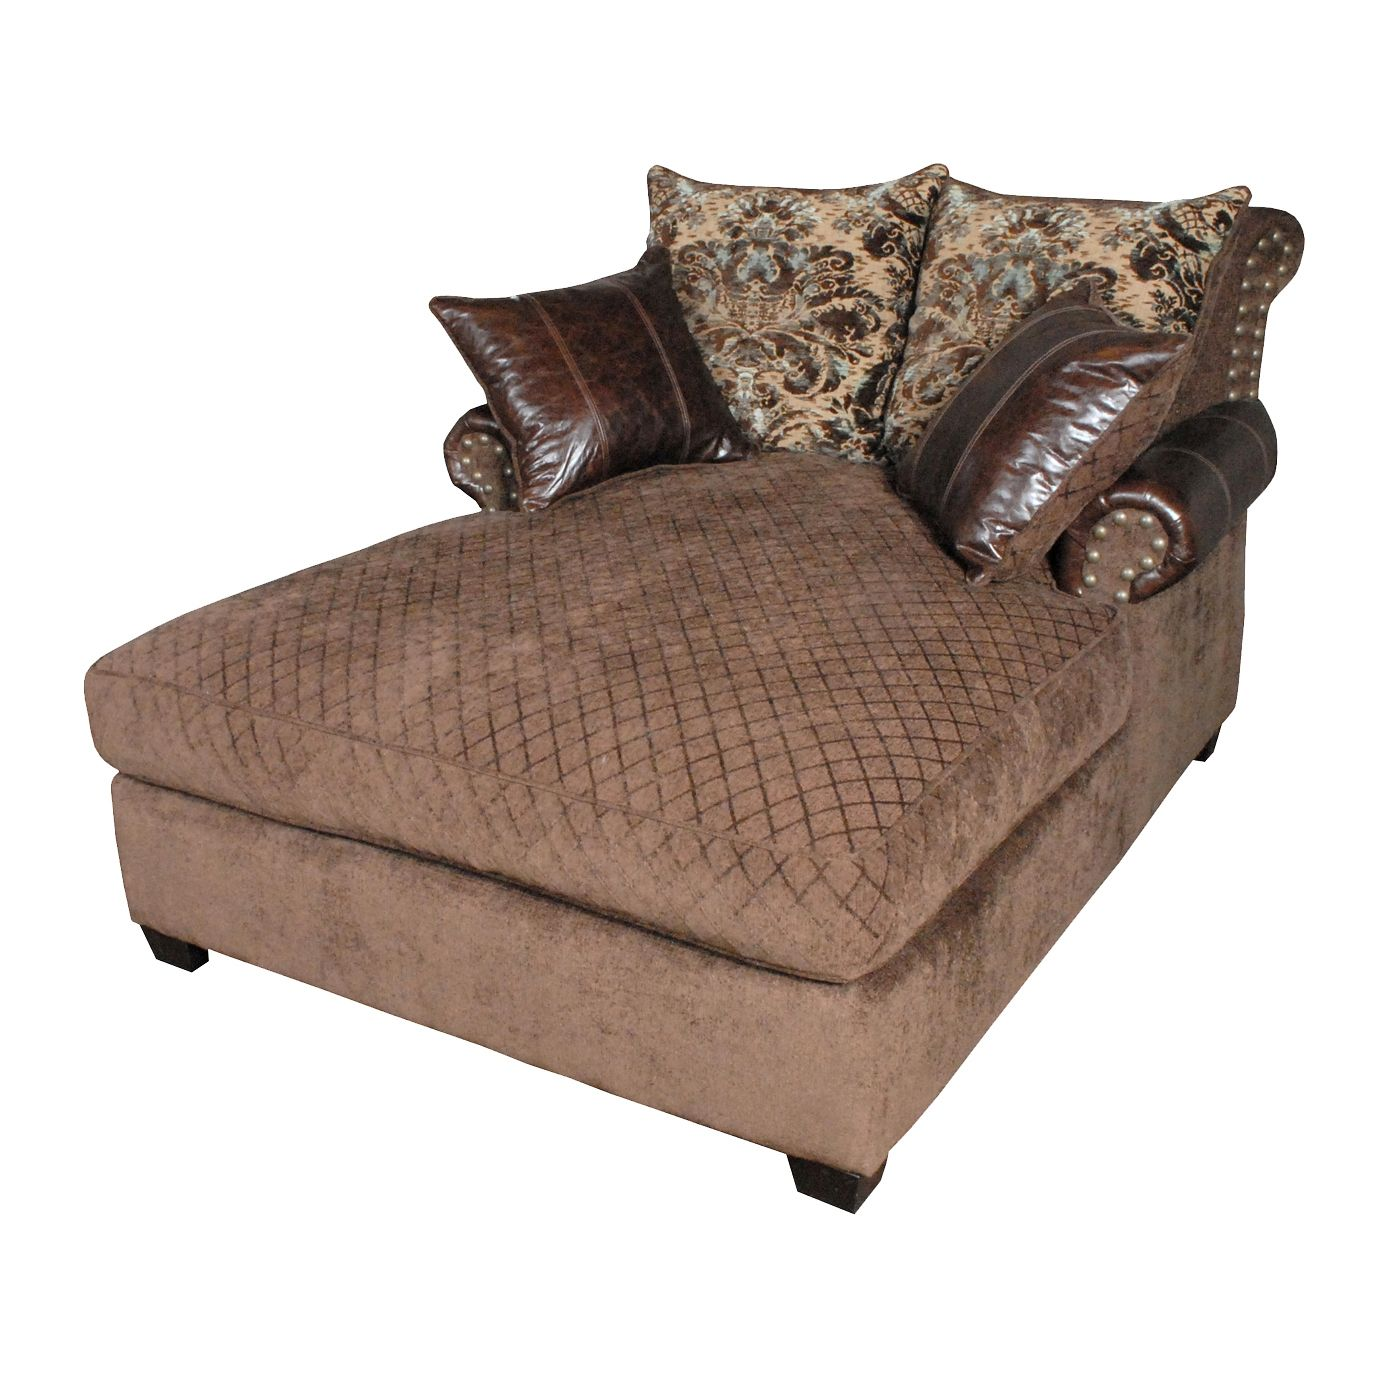 Indoor double chaise lounge more sales categories for Buy chaise lounge